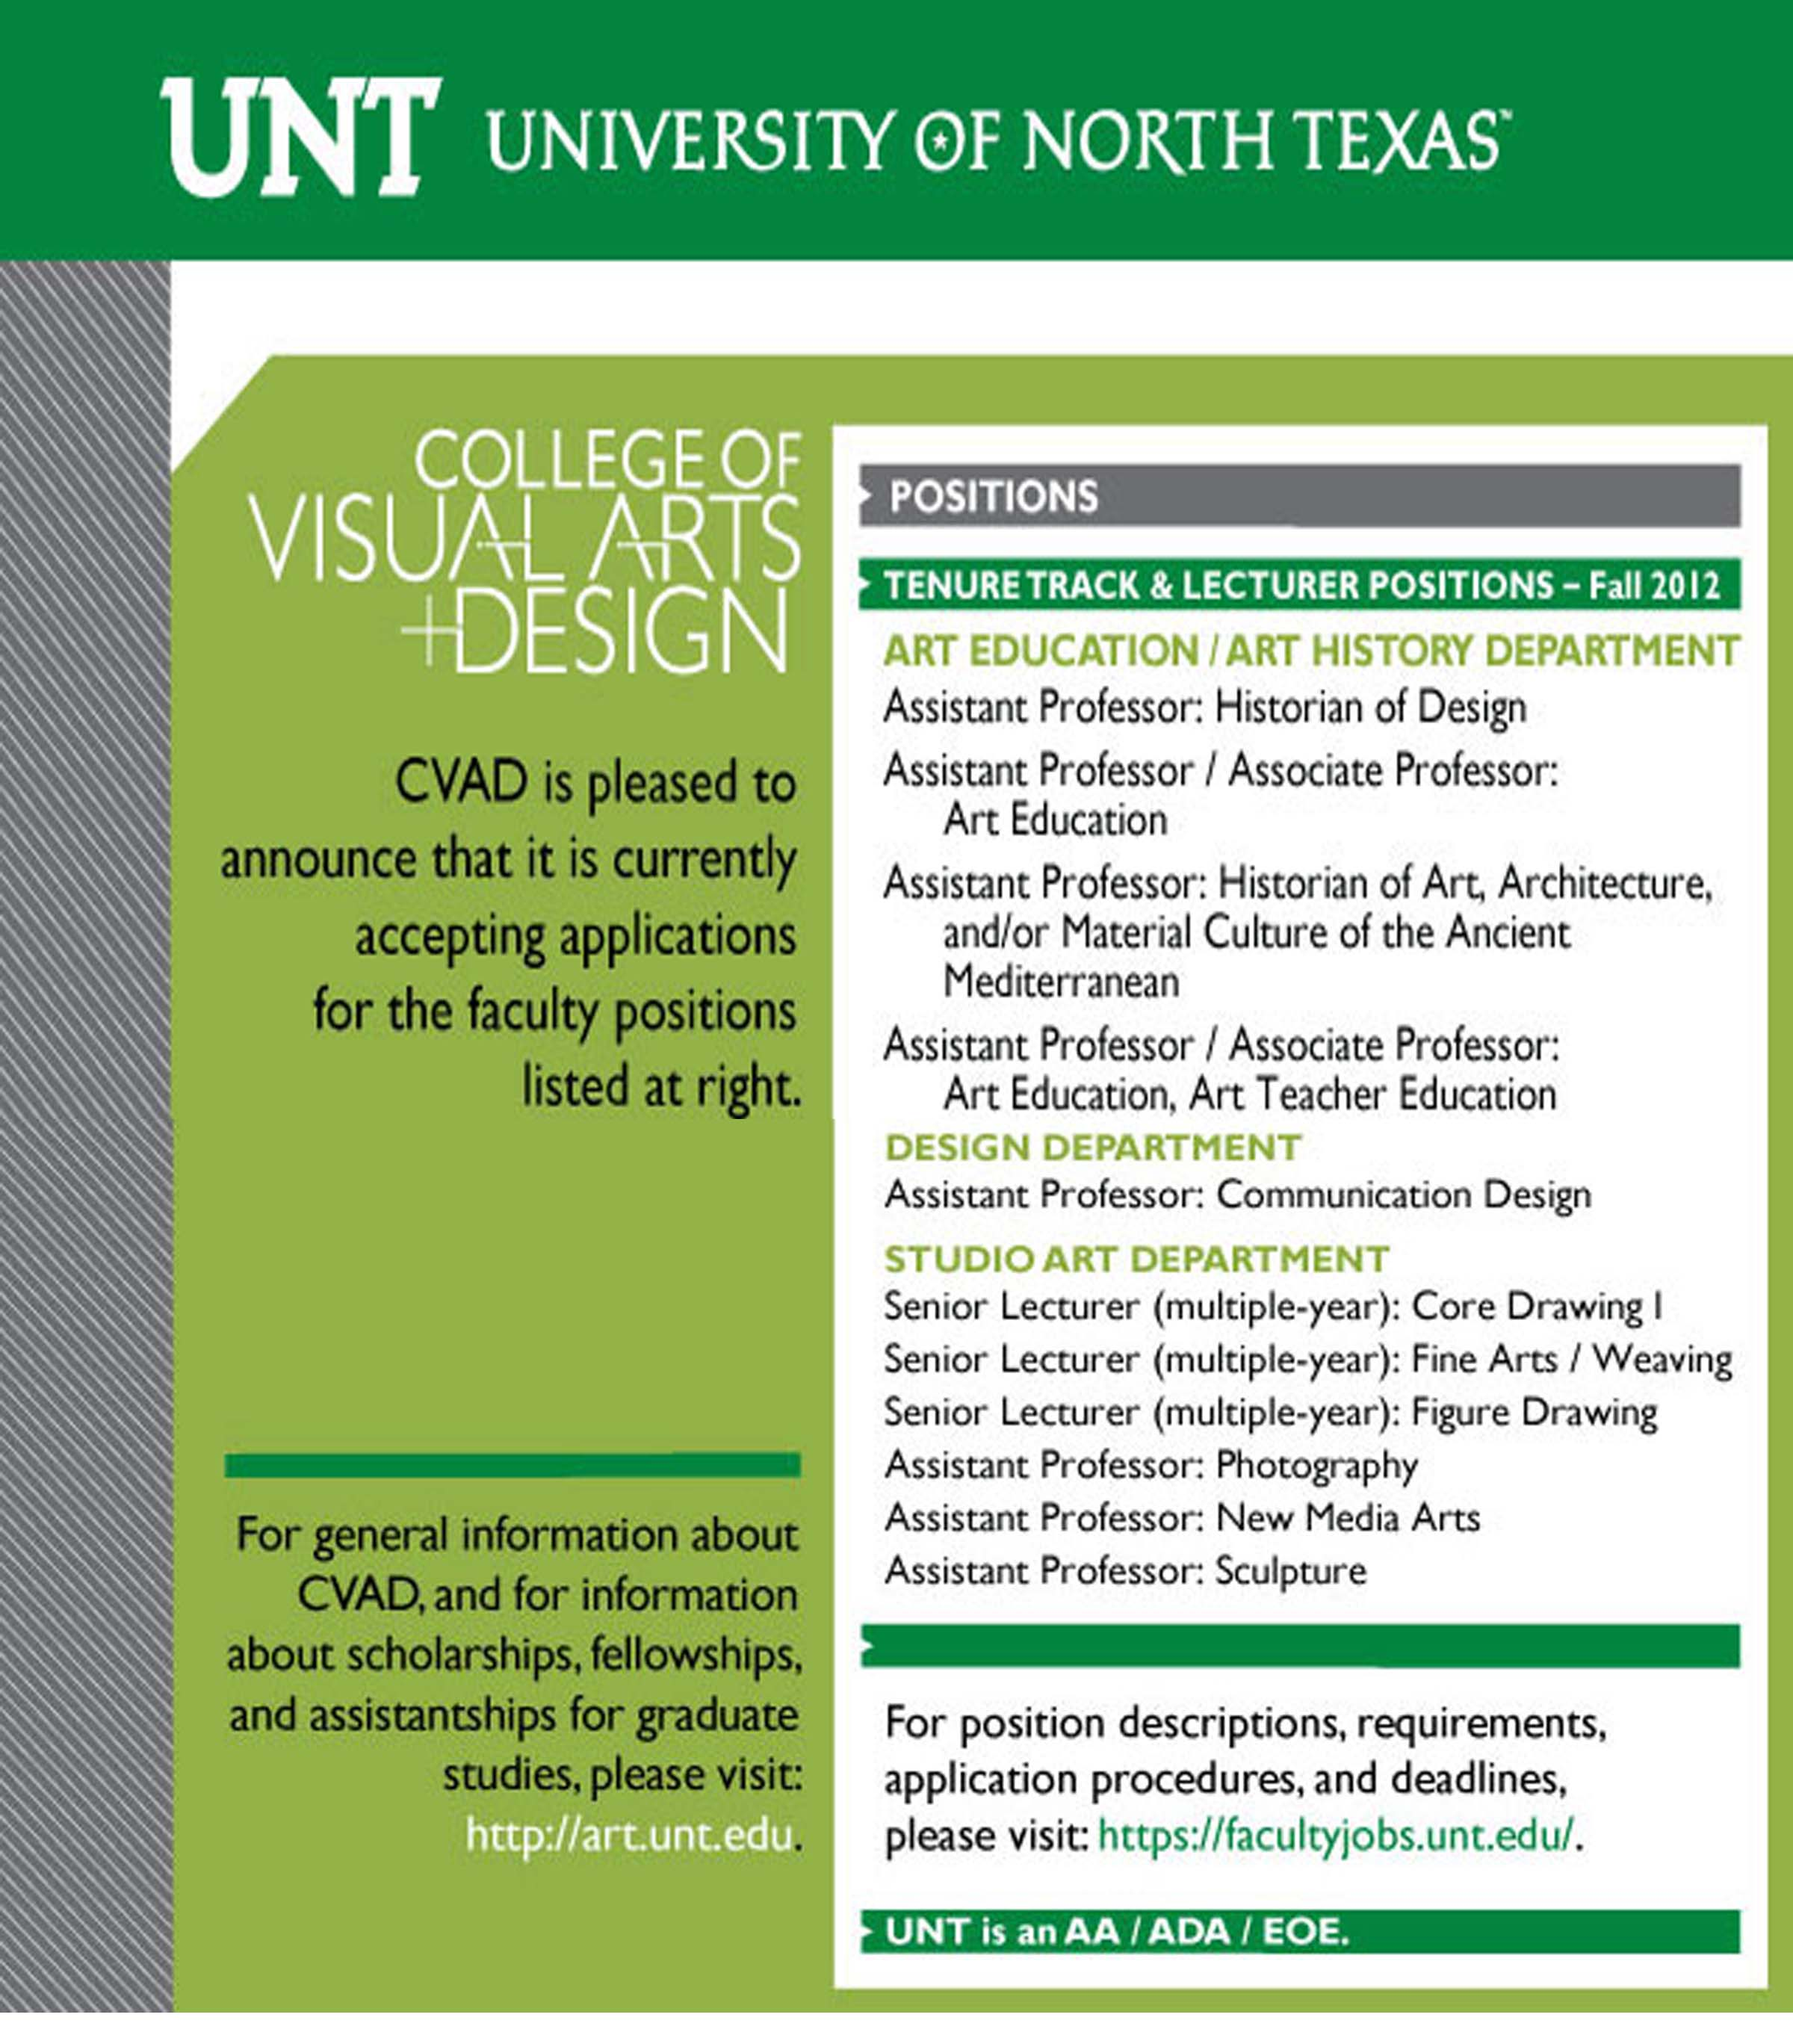 University of North Texas flyer